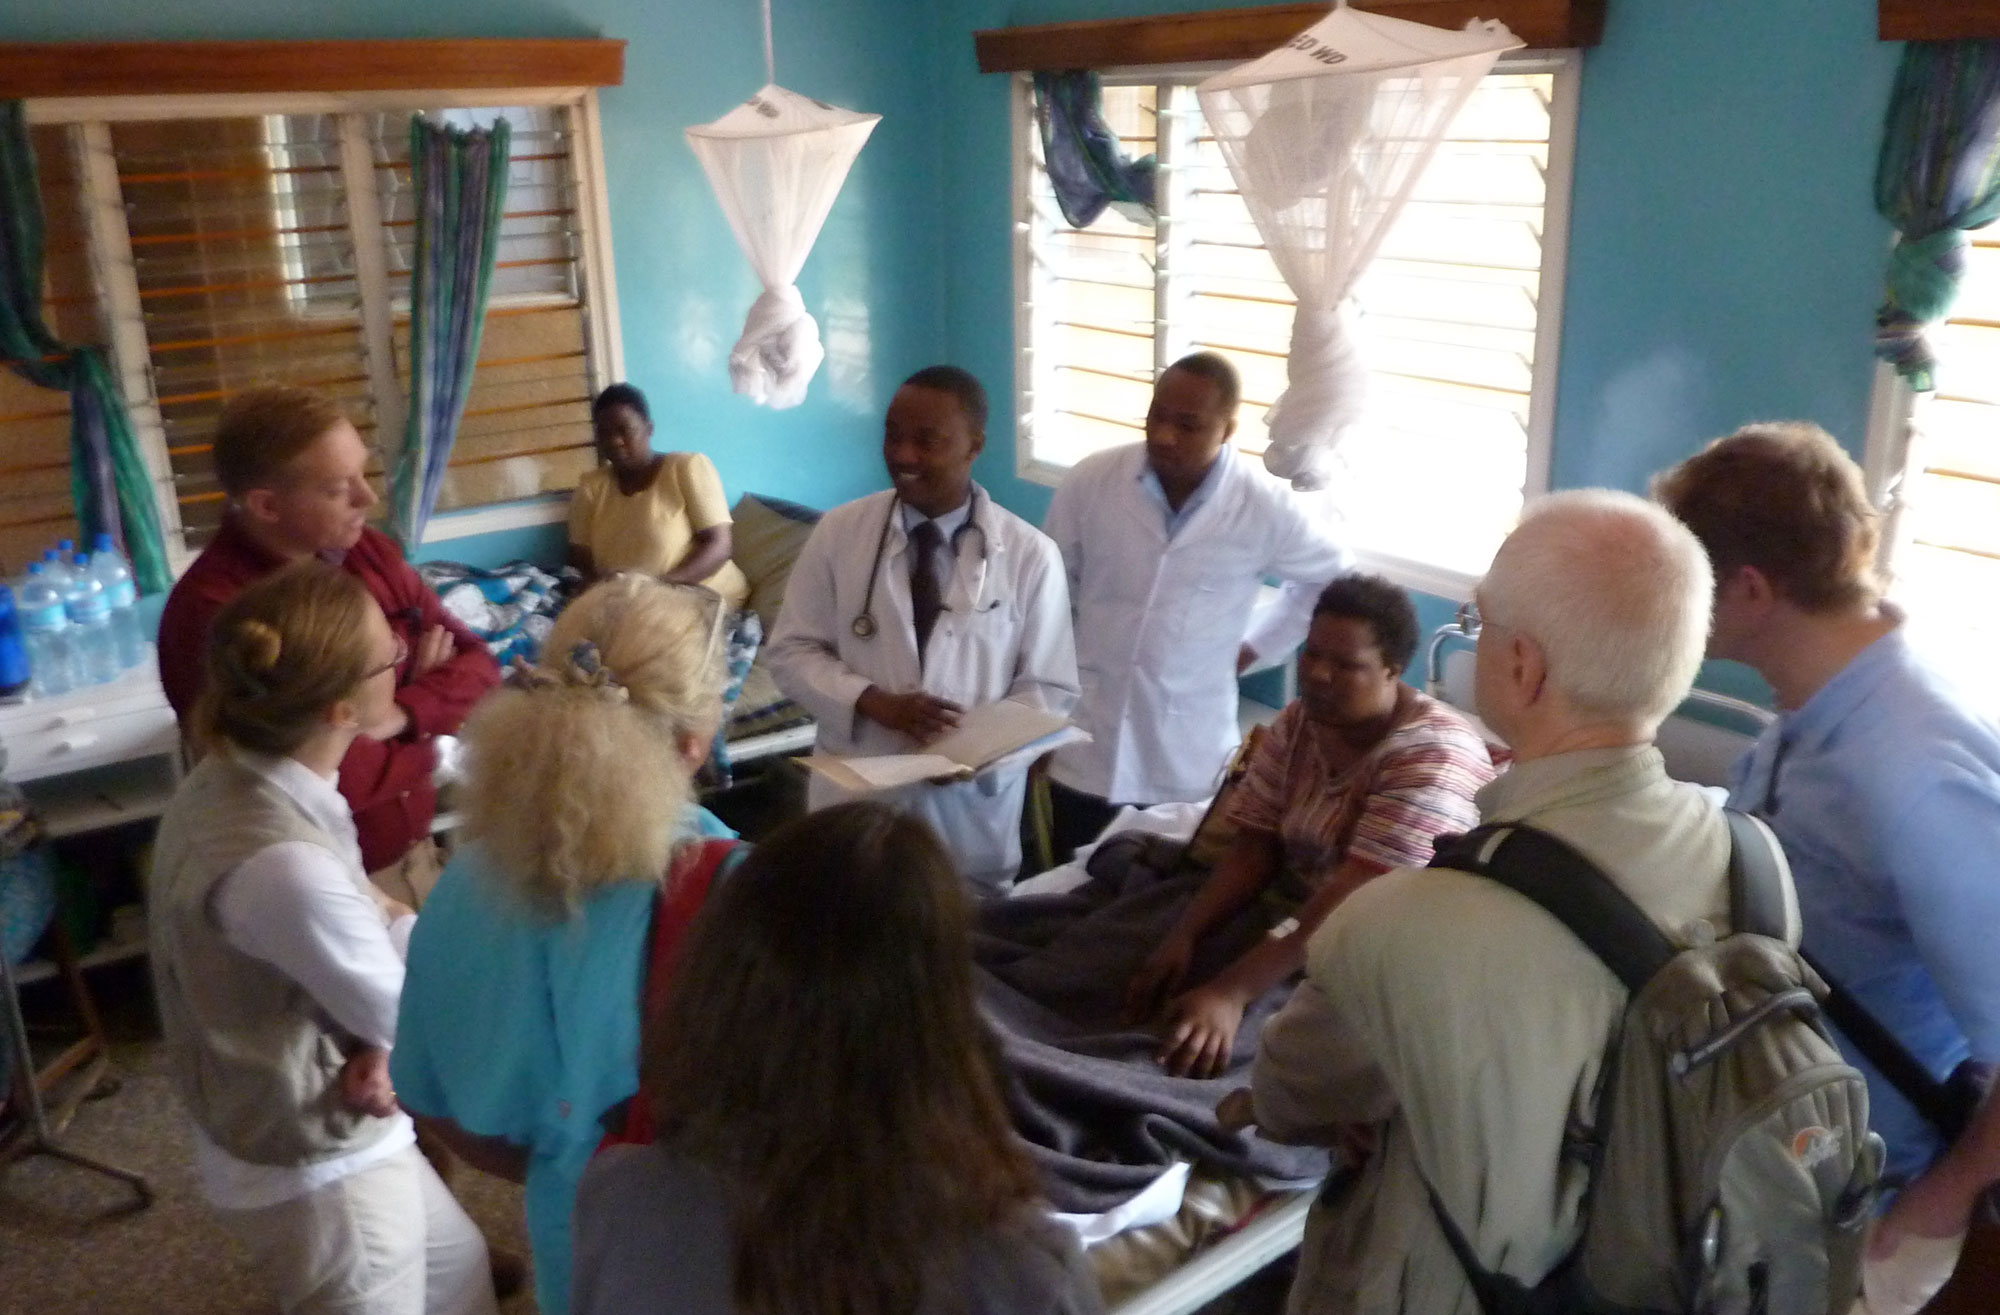 Travel Medicine - Hospital Rounds in Arusha